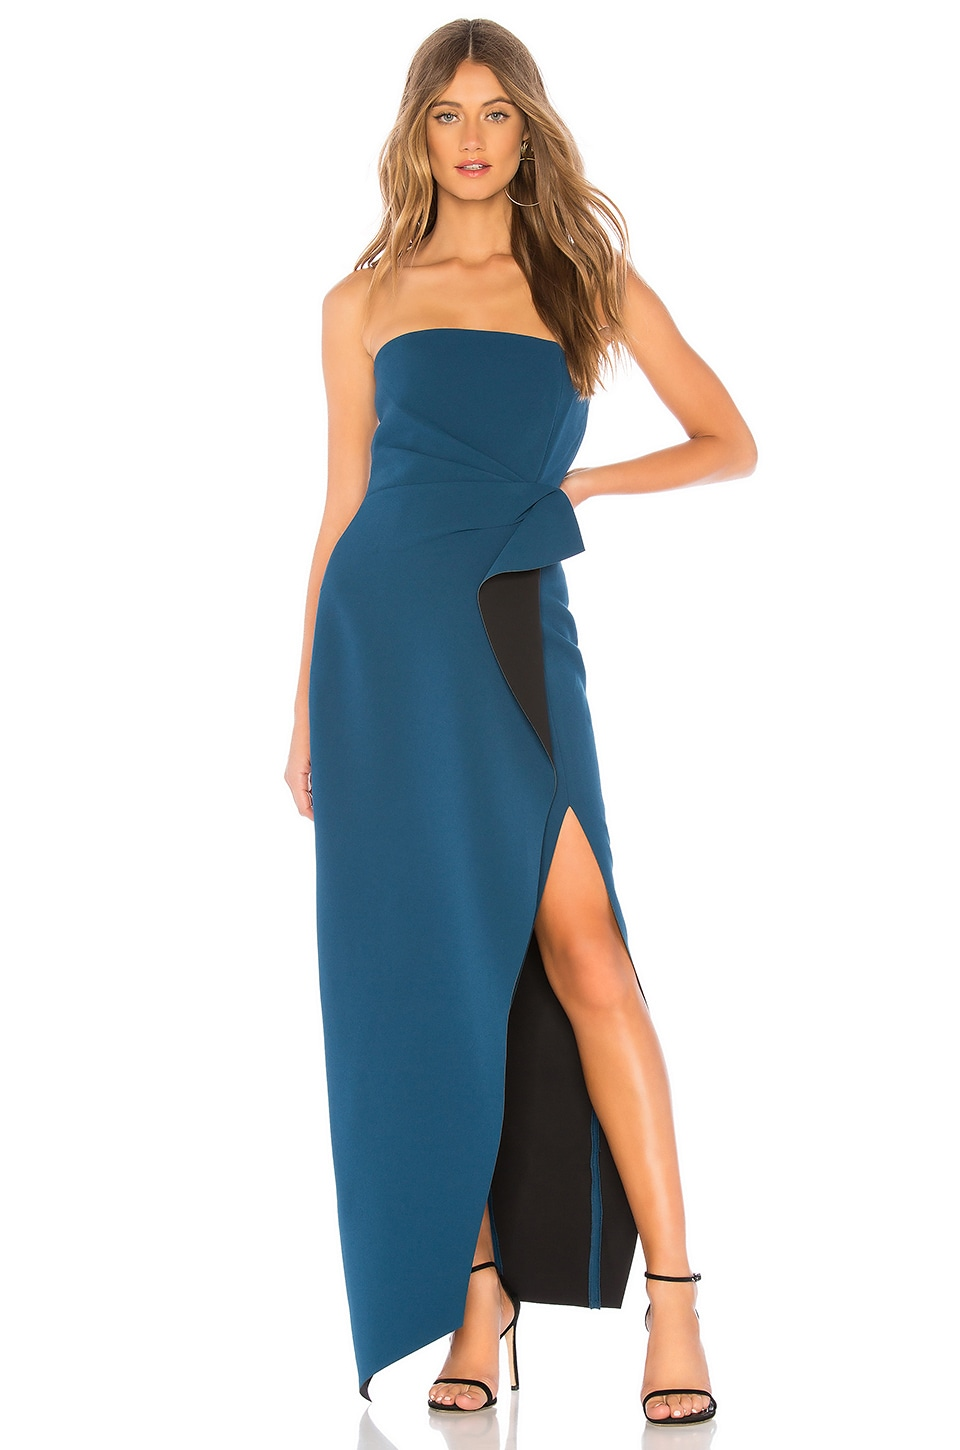 aijek Camille Bustier Gown in Teal & Black